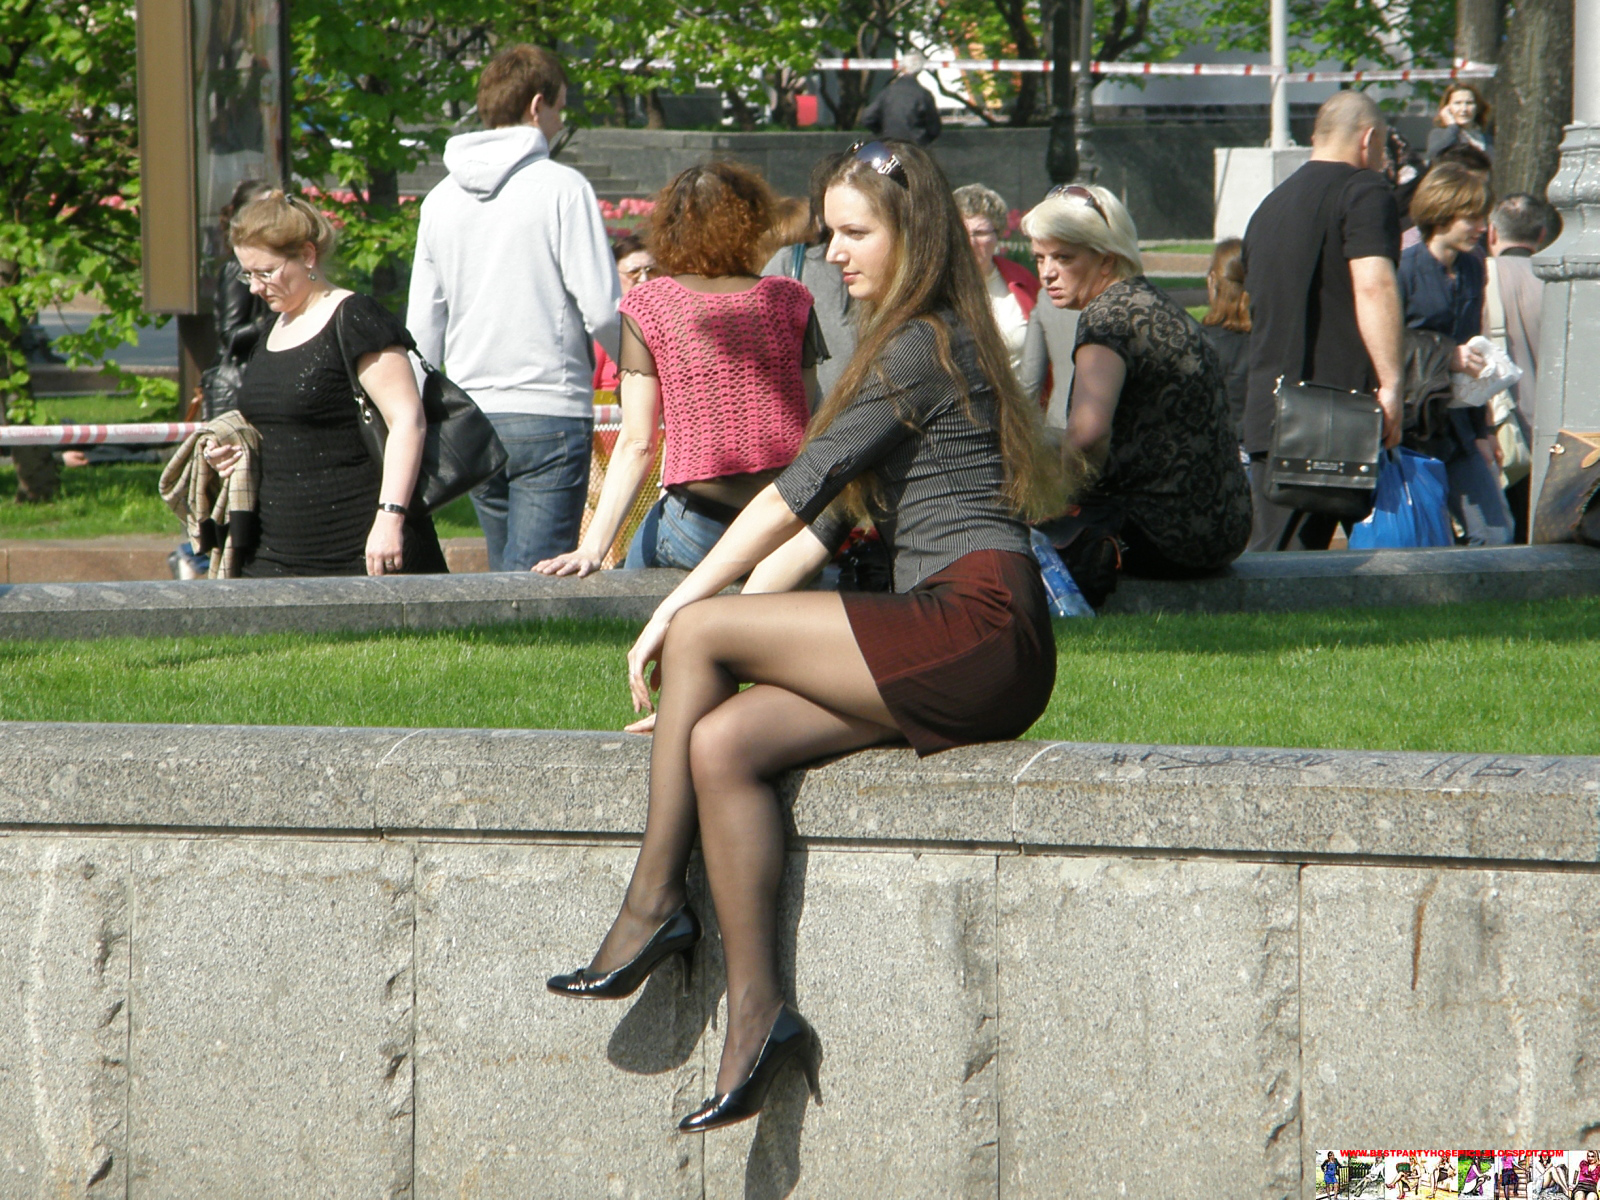 Or Pantyhose Fetishism 111